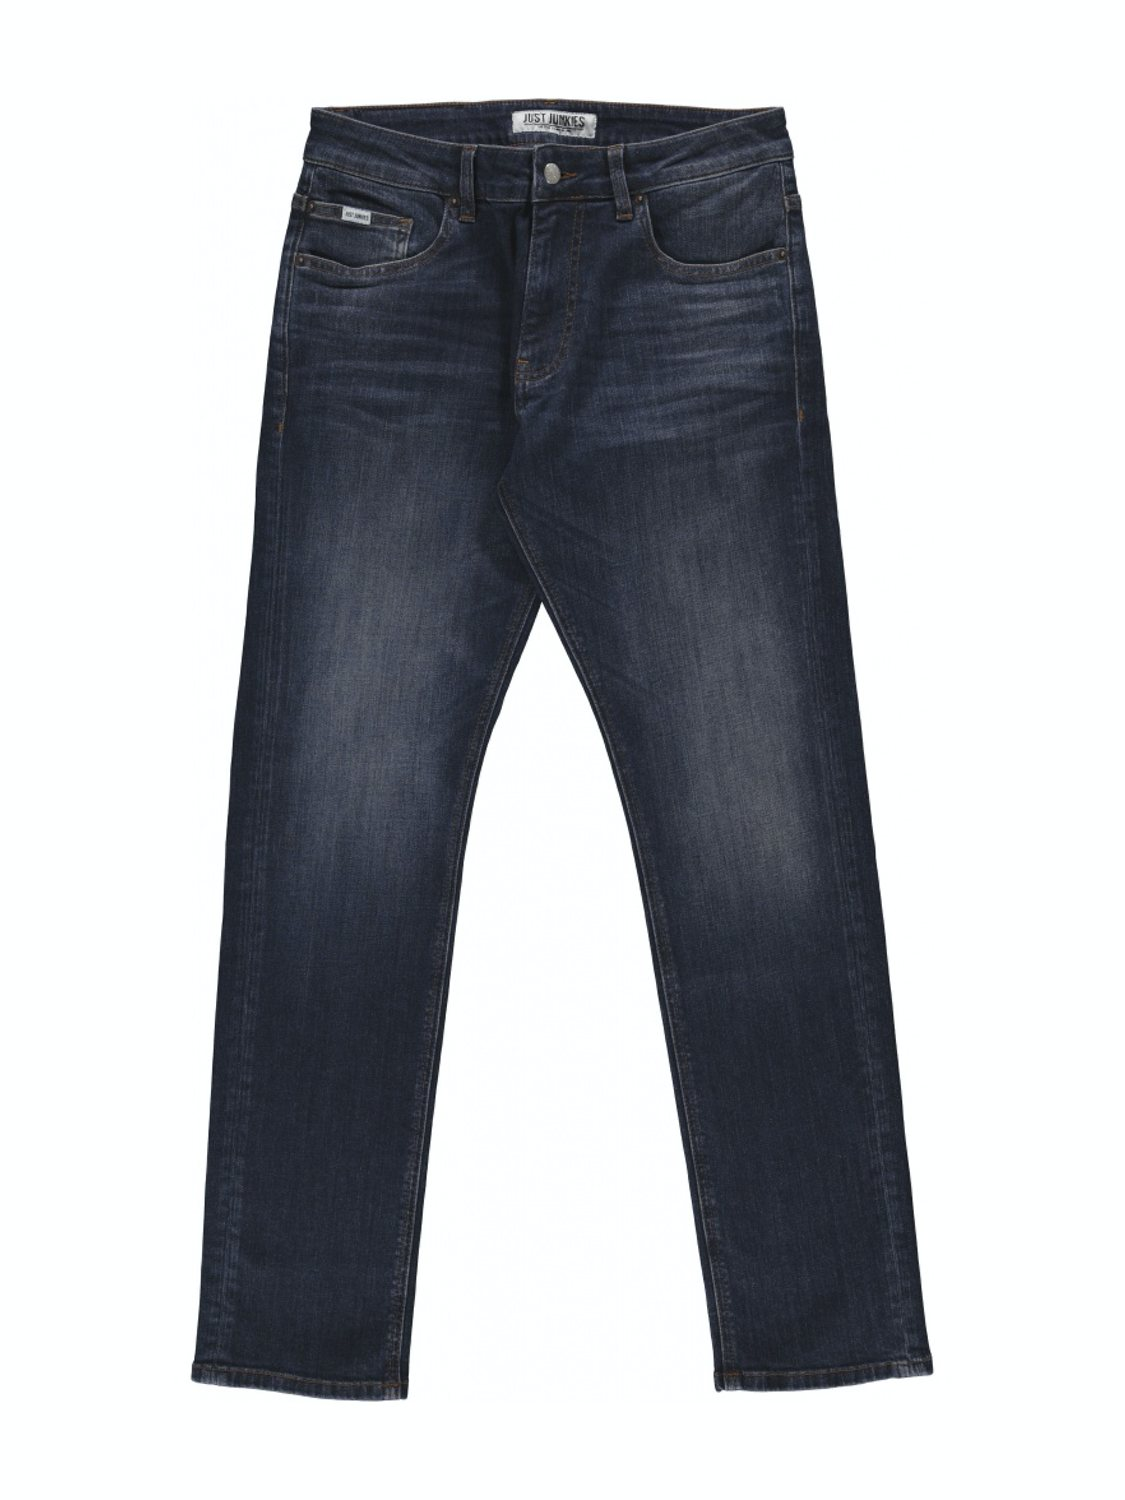 Just junkies Jeans - JEFF OCEA BLUE JJ1991 | GATE 36 Hobro